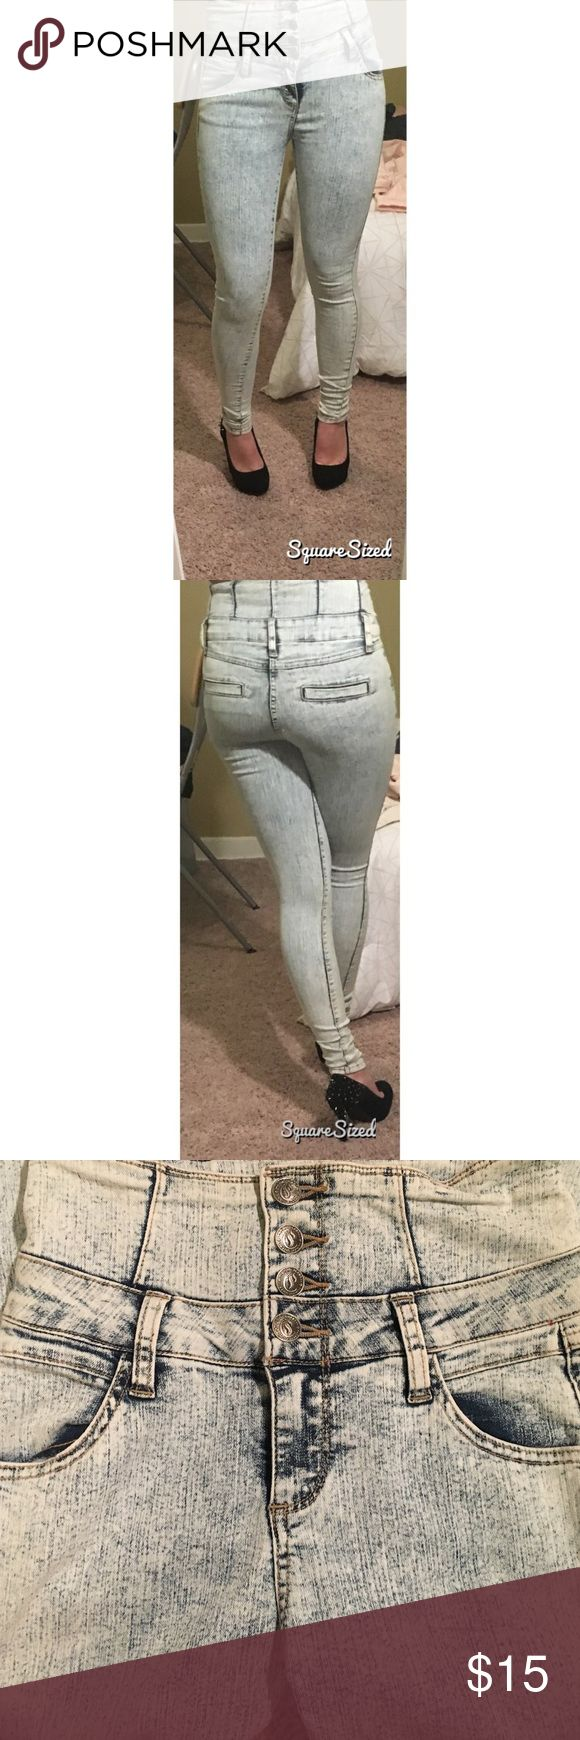 Cello Jeans-acid washed jeans The 80s called and they said their pants loom better on you! These stretch high wasted acid washed jeans will keep you movin' and groovin' all night. Cello Jeans Pants Skinny